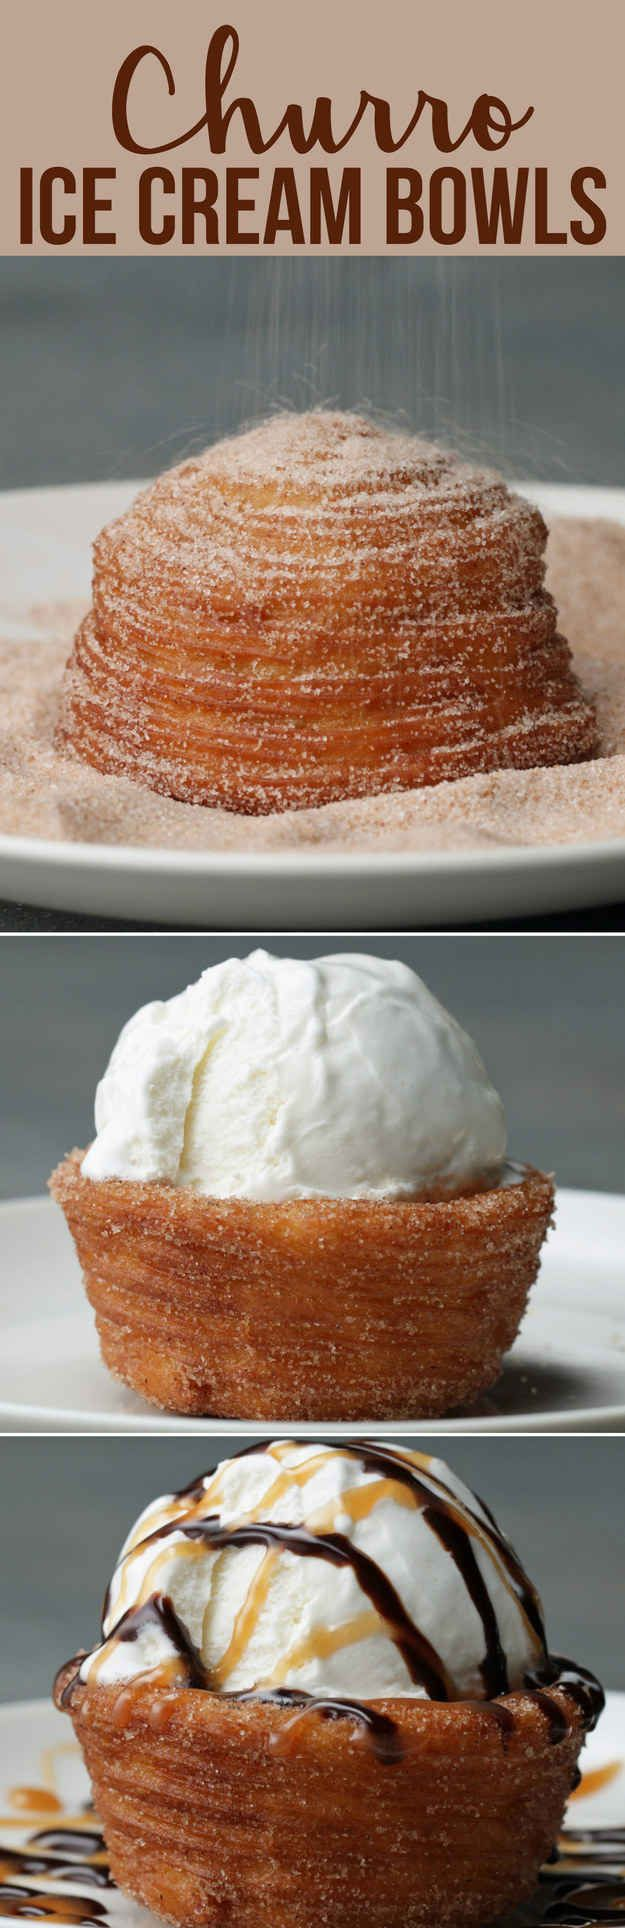 Churro Ice Cream Bowls. OMG! These are dangerous but look so delicious